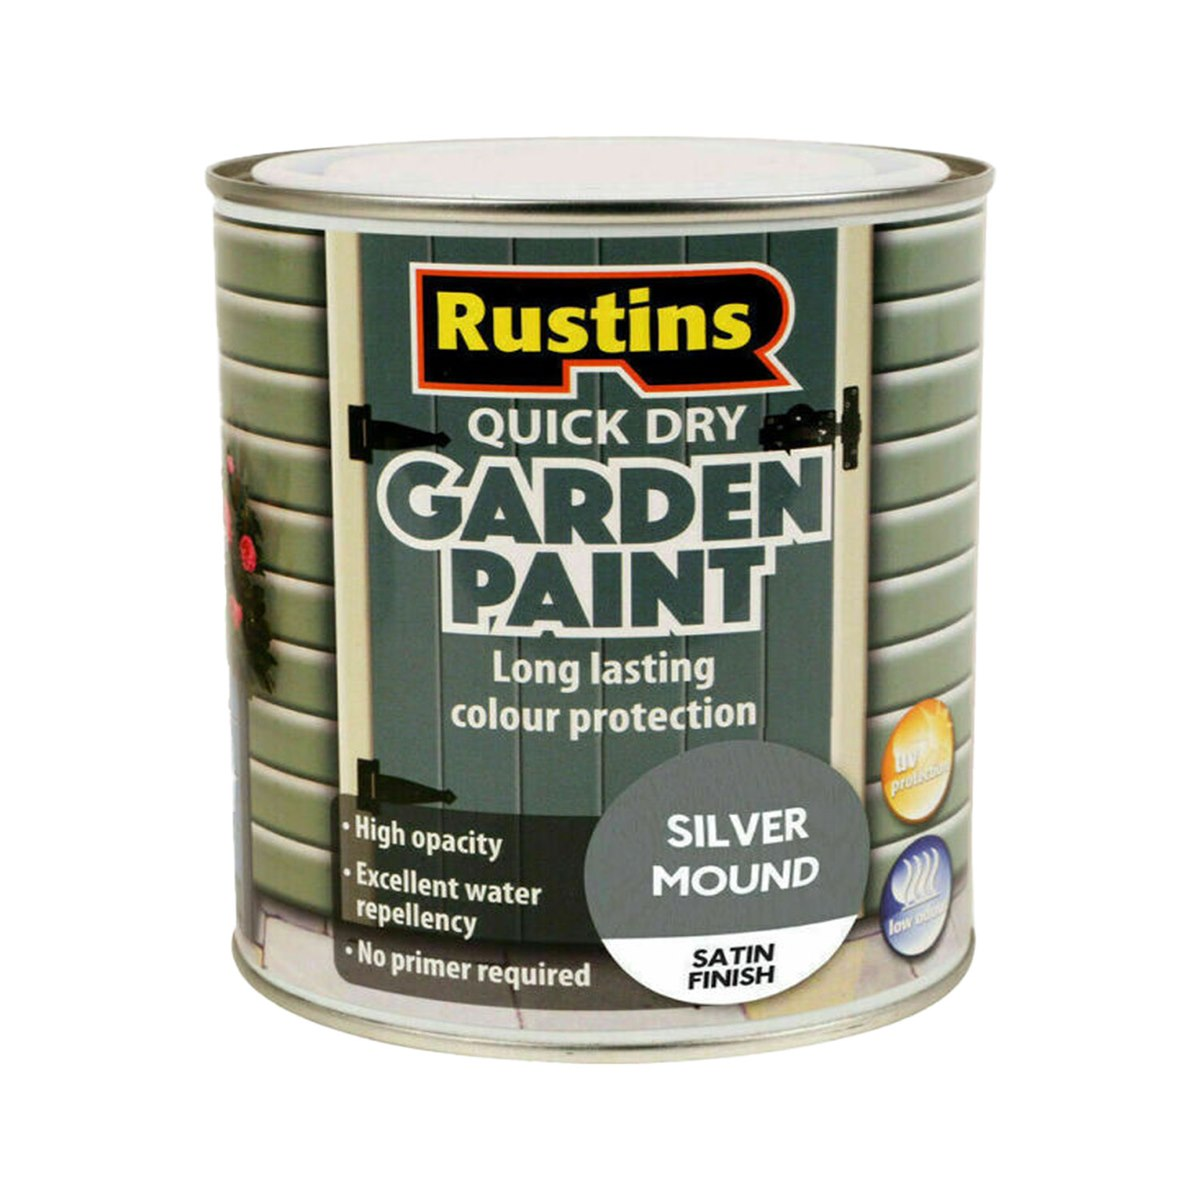 Rustins Quick Dry Garden Paint Satin Finish Silver Mound